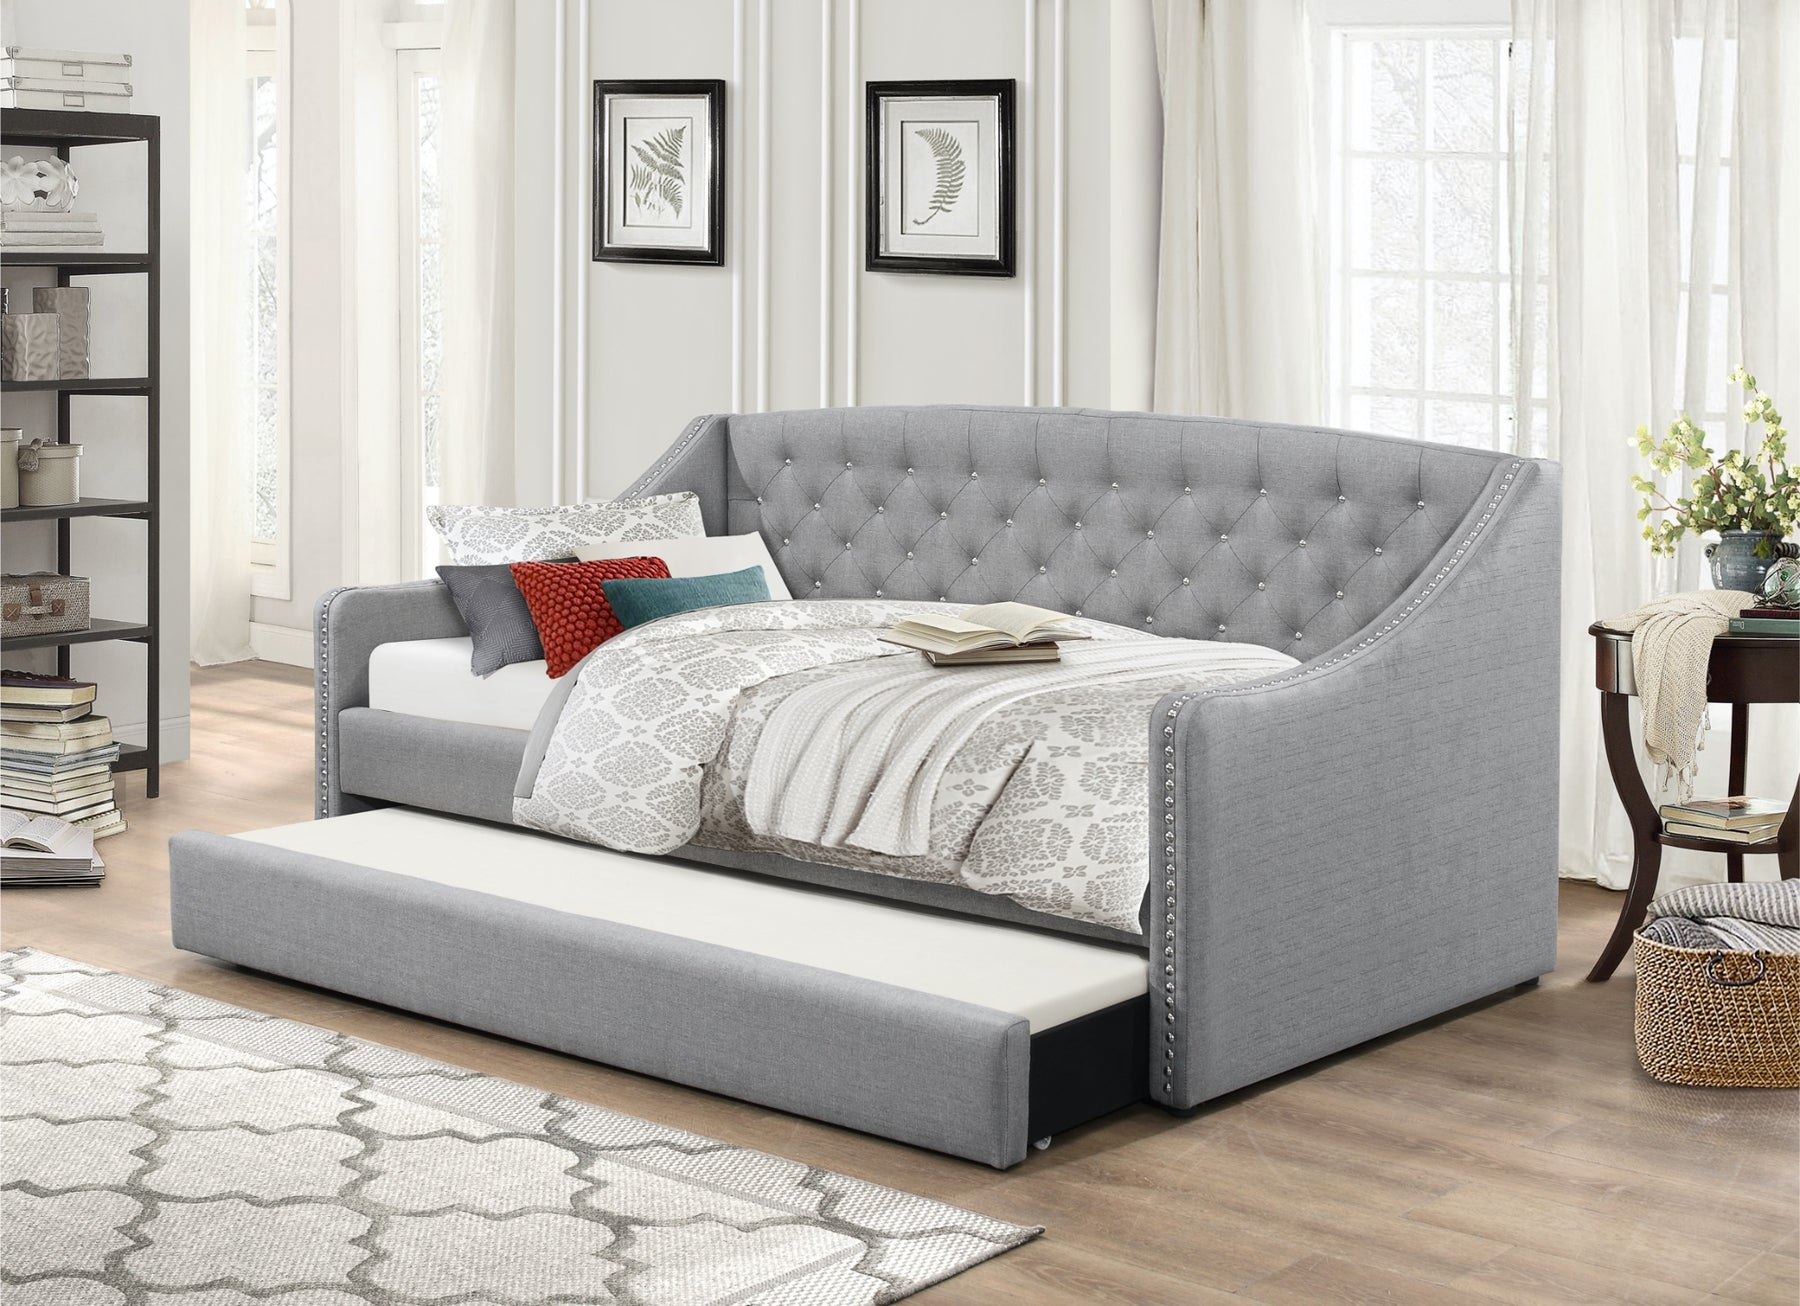 Cara Single - Single Day Bed with Trundle